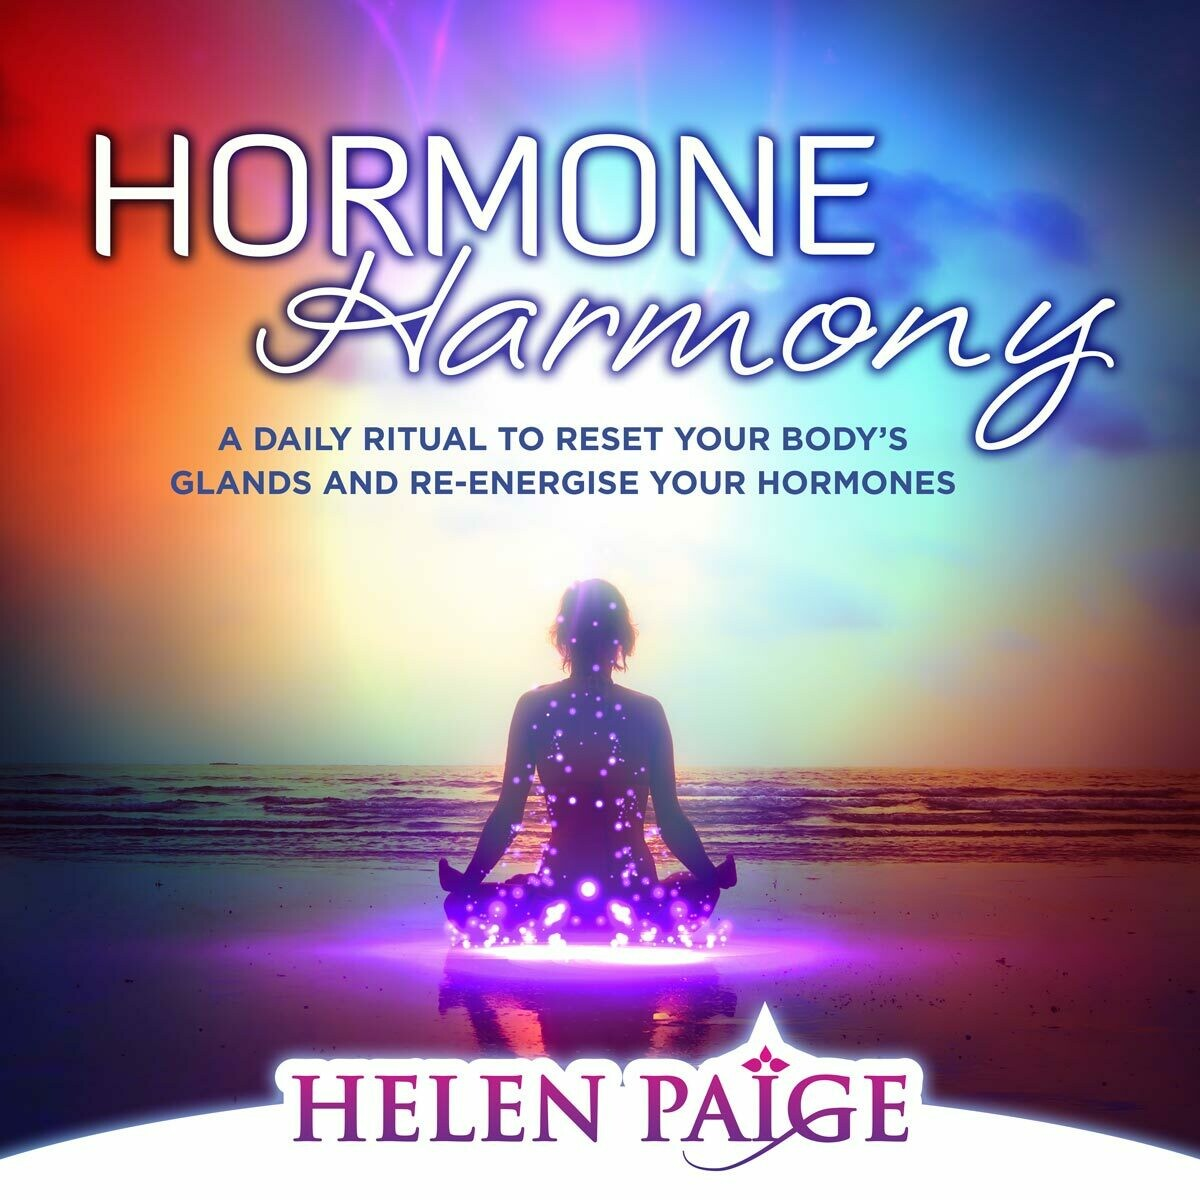 HORMONE HARMONY: A daily ritual to reset your body's glands and re-energize your hormones